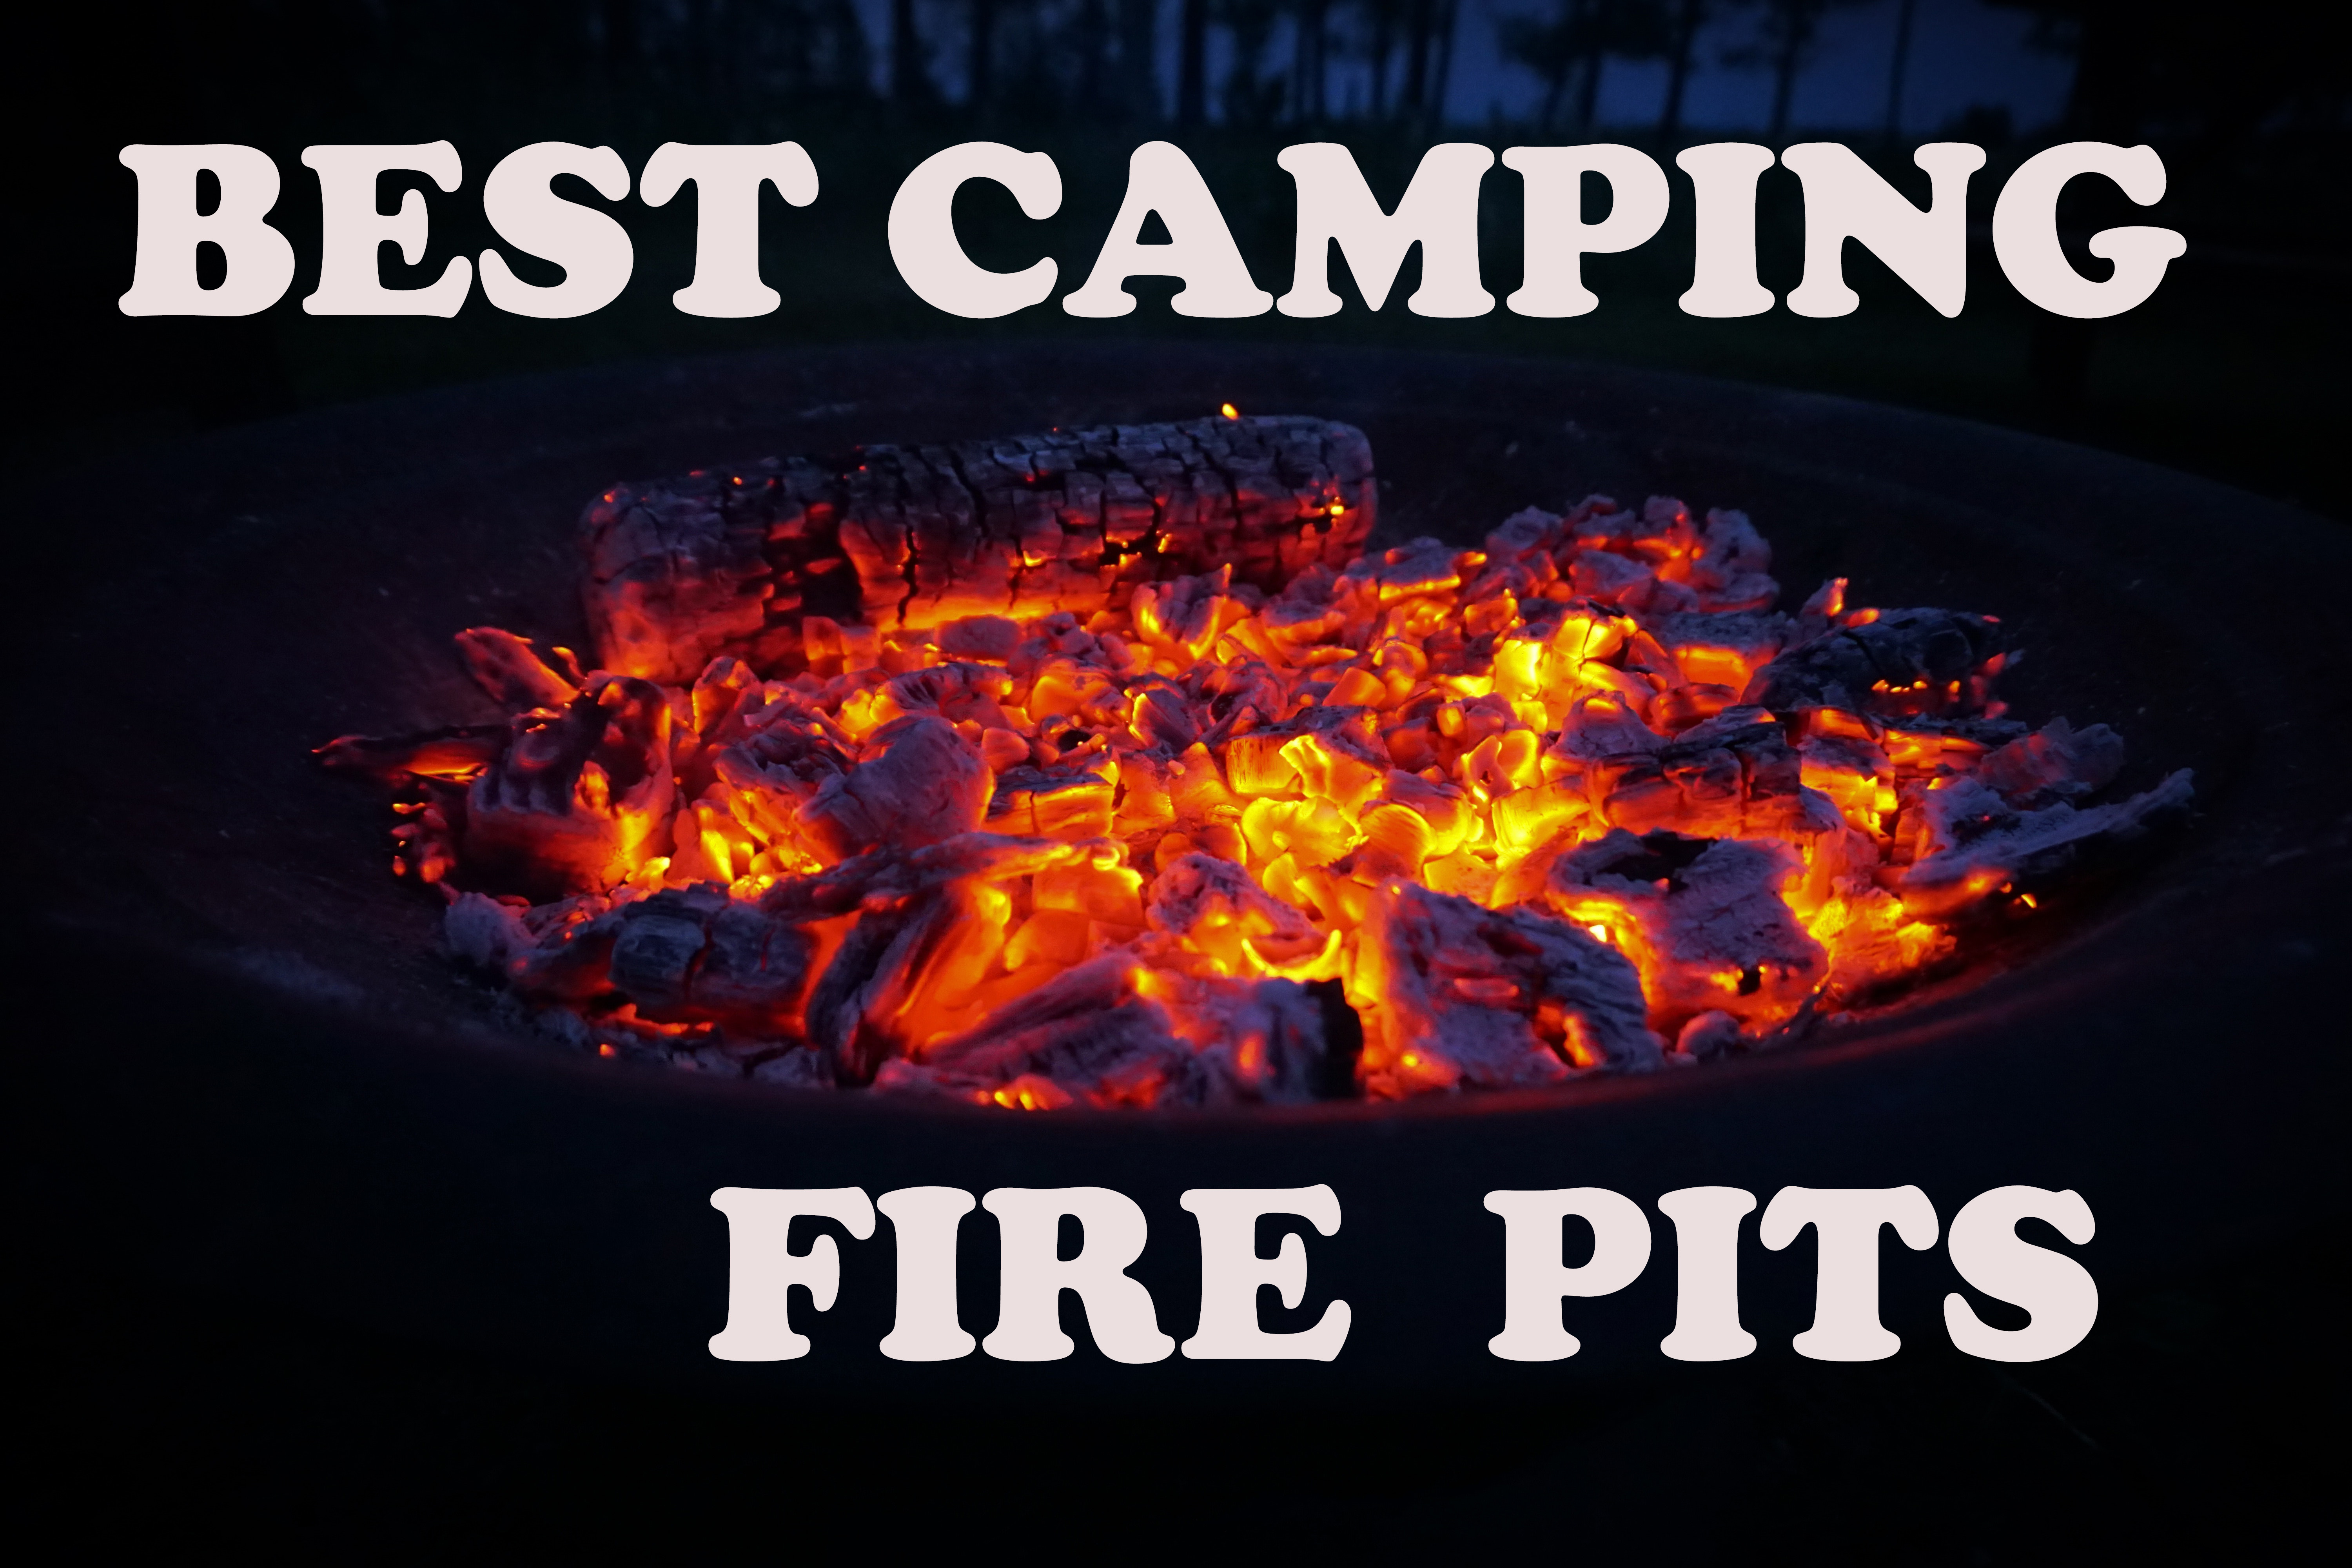 Camping fire pits